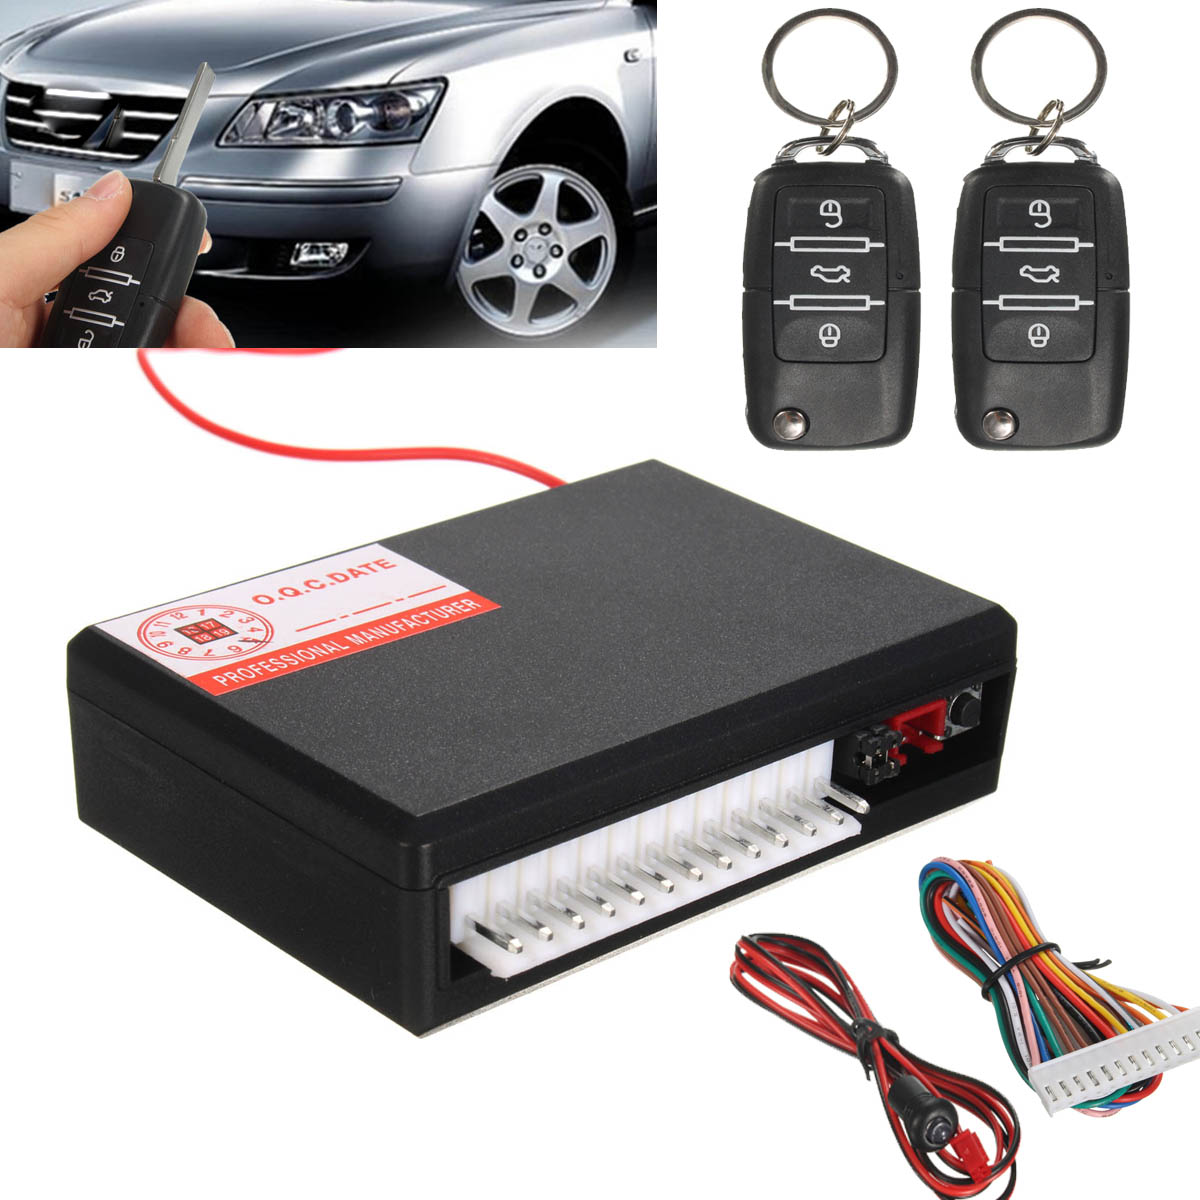 2016 New Universal Car Vehicle Remote Control Central Kit Door Lock Locking Keyless Entry Theft